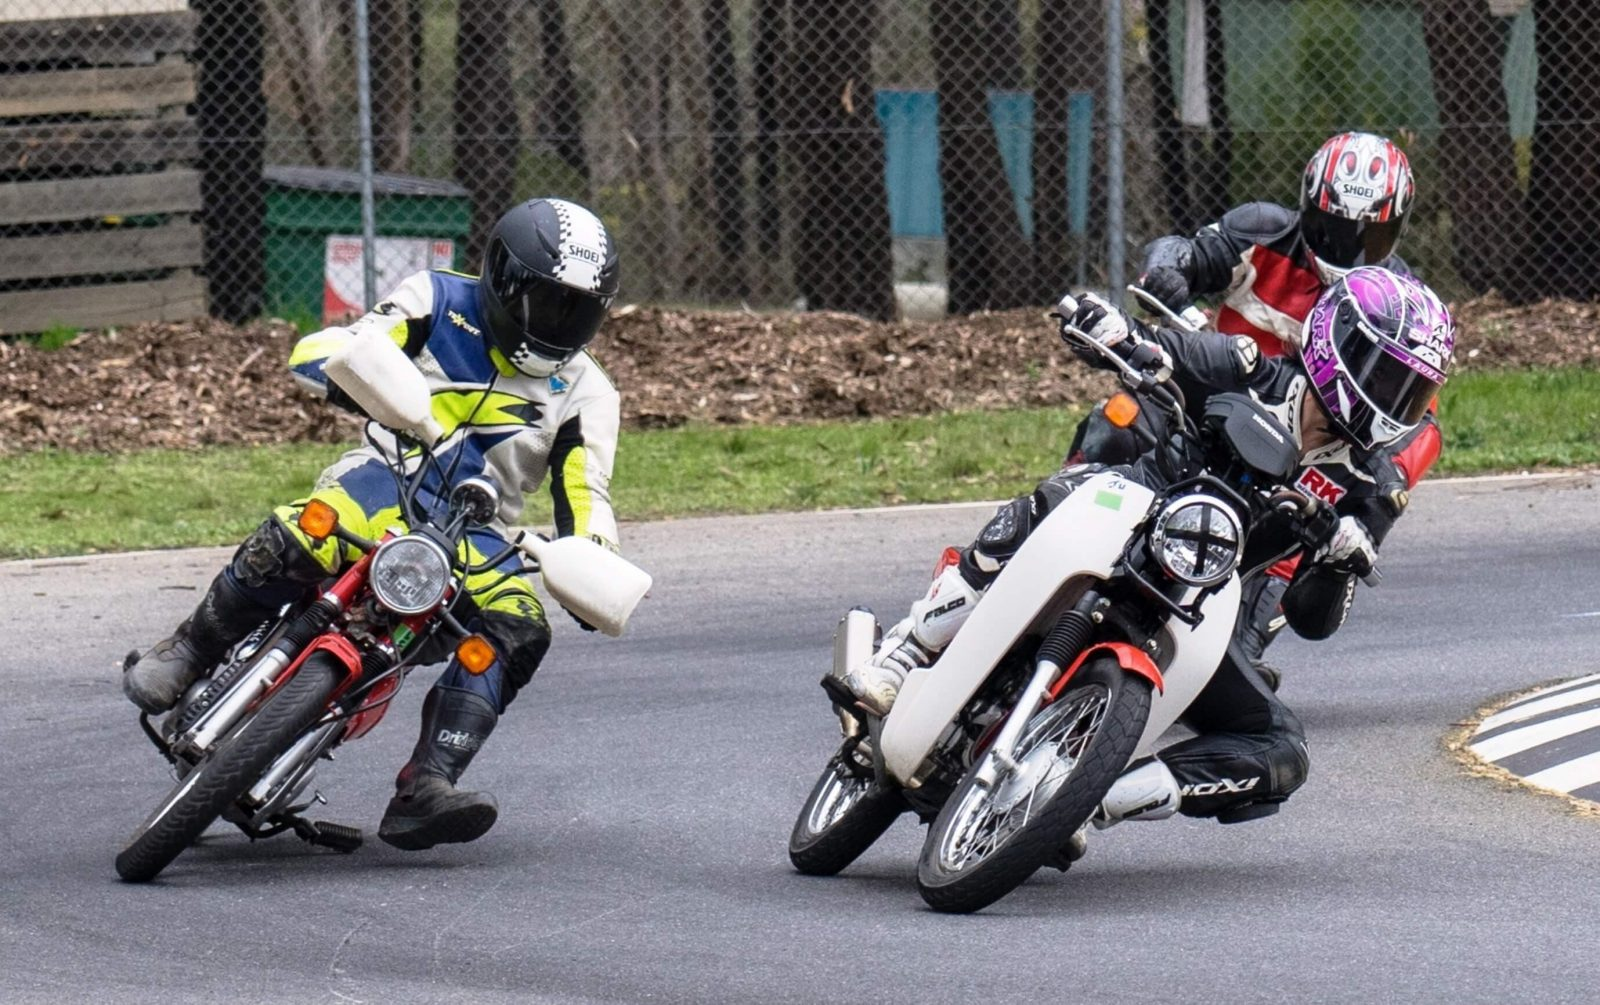 Motopostie GP for a Cause